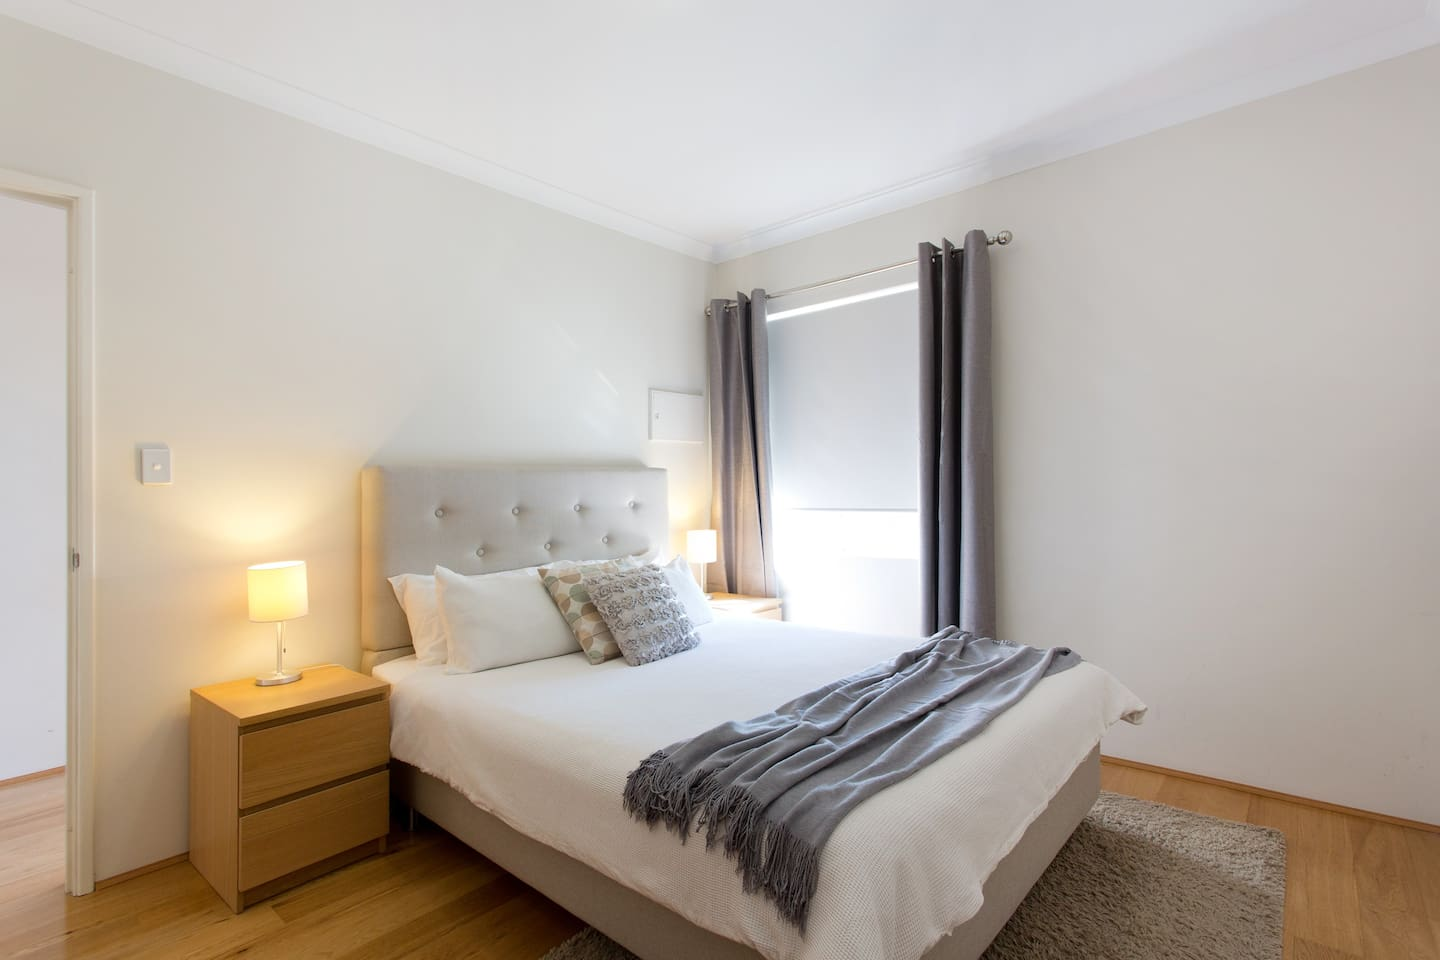 Peaceful bedroom with neutral decor and block out curtains on top of roller blind. Plenty of pillows and linens supplied.